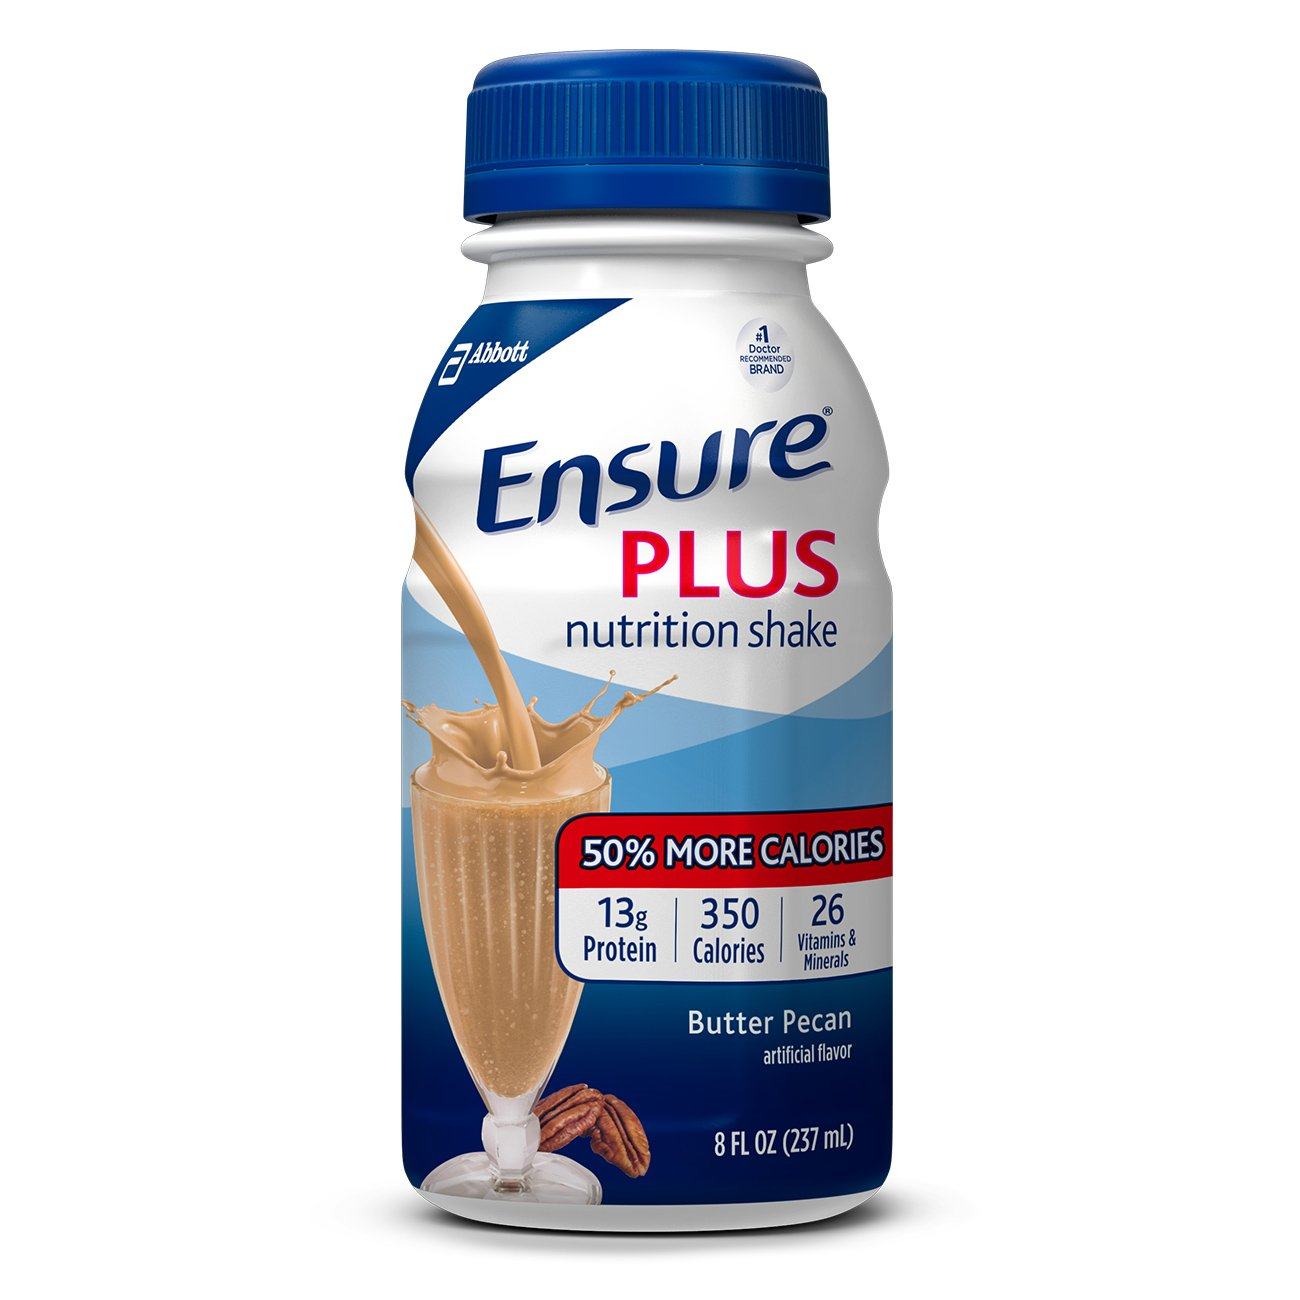 Ensure Plus Nutrition Shake with 13 grams of high-quality protein, Meal Replacement Shakes, Butter Pecan, 8 fl oz, 24 count by Ensure Plus (Image #1)